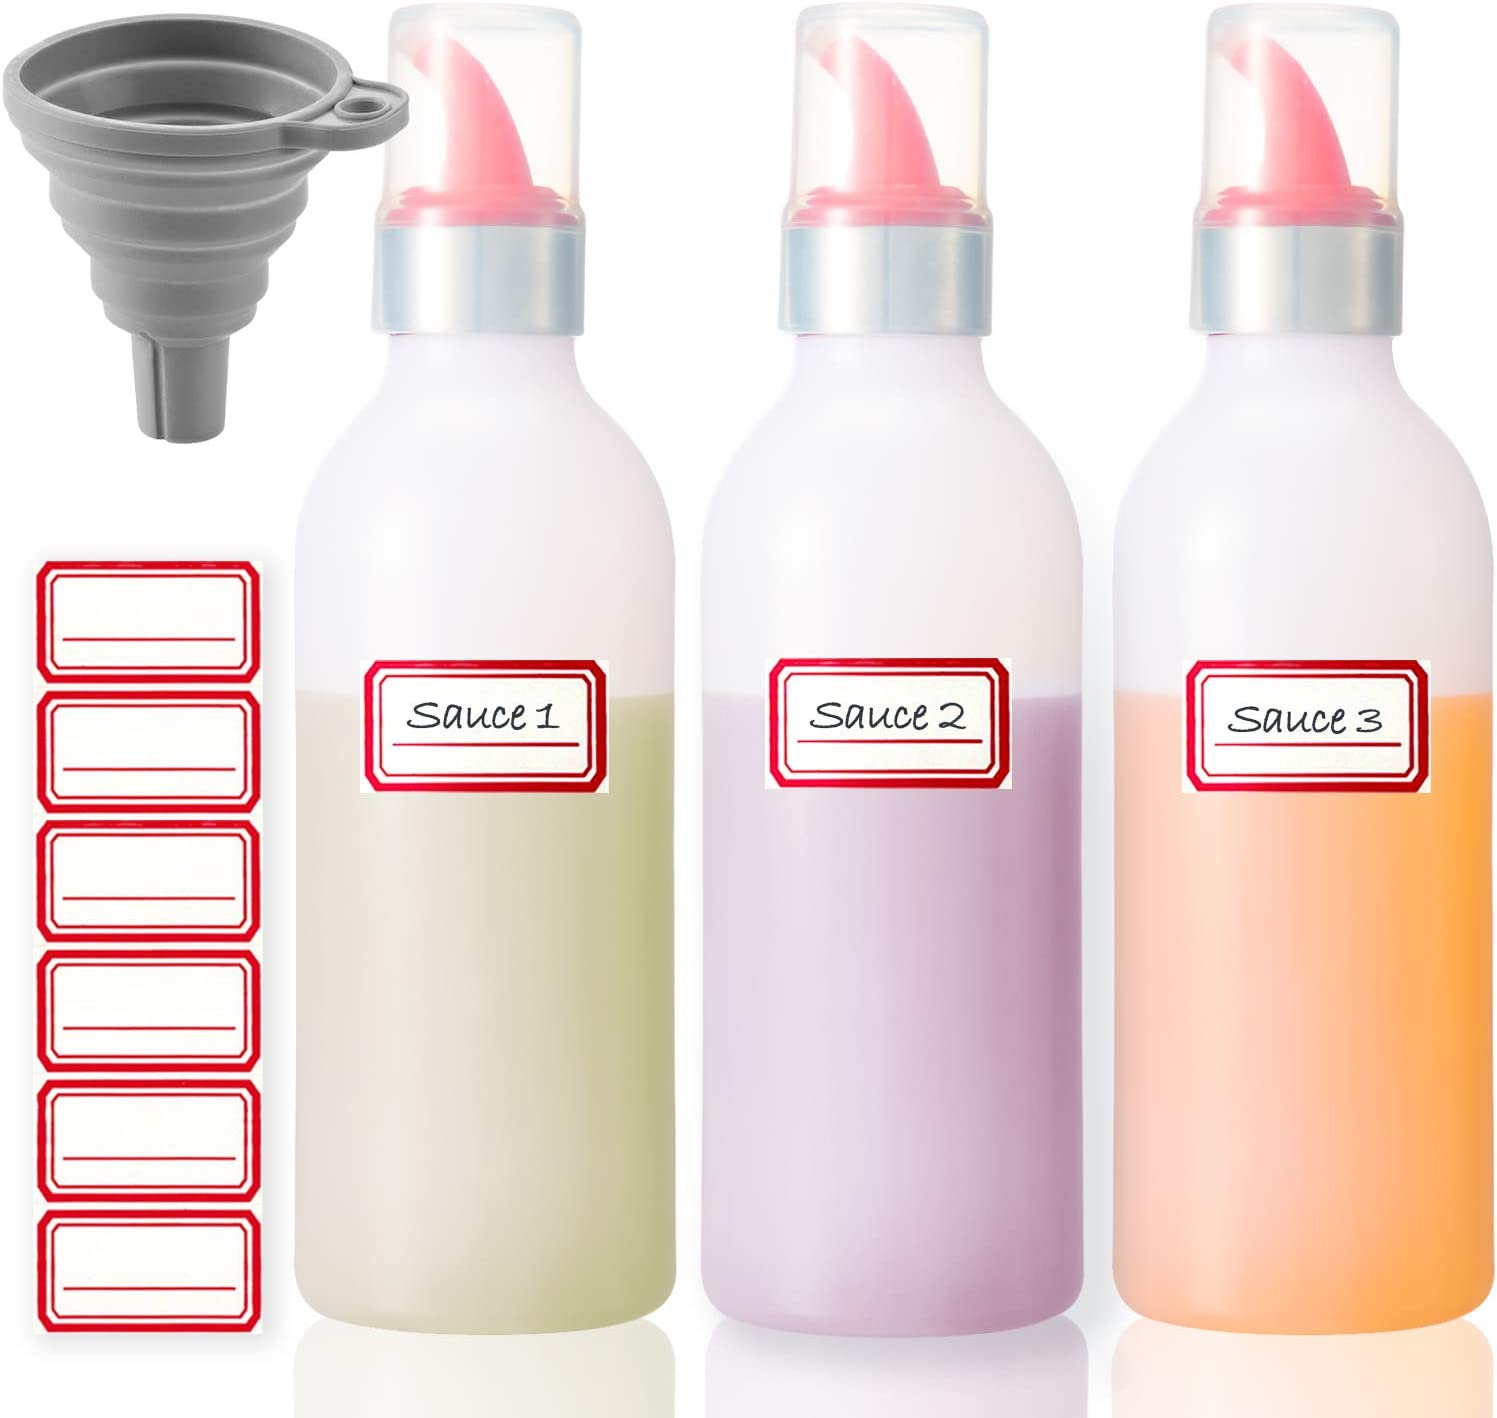 Condiment Max 90% OFF Squeeze Bottle Sauce Clearance SALE Limited time Squirt for Kitchen